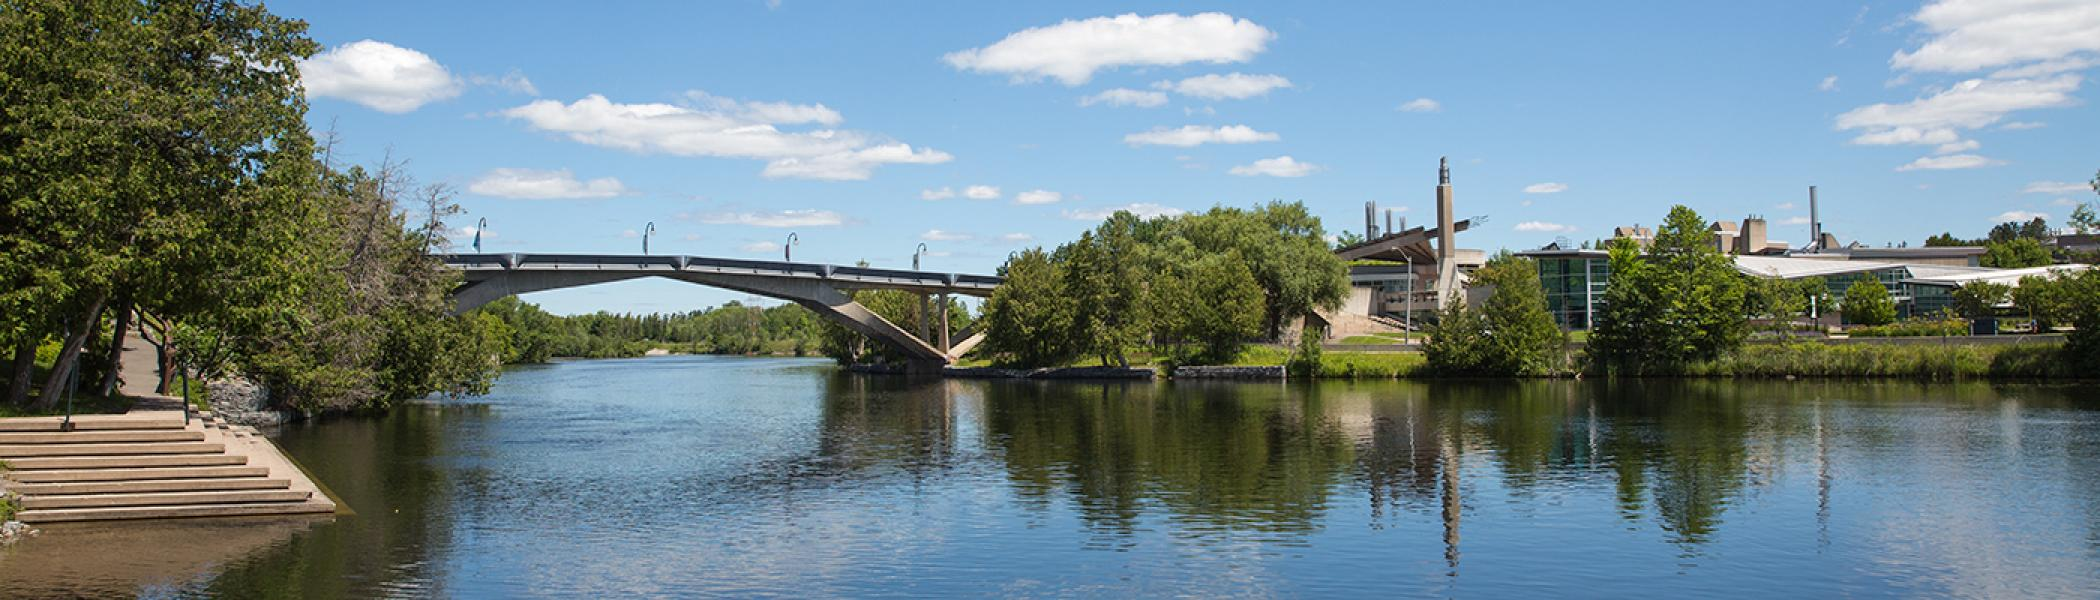 Beauty shot of Symons campus with bridge and Otonabee River